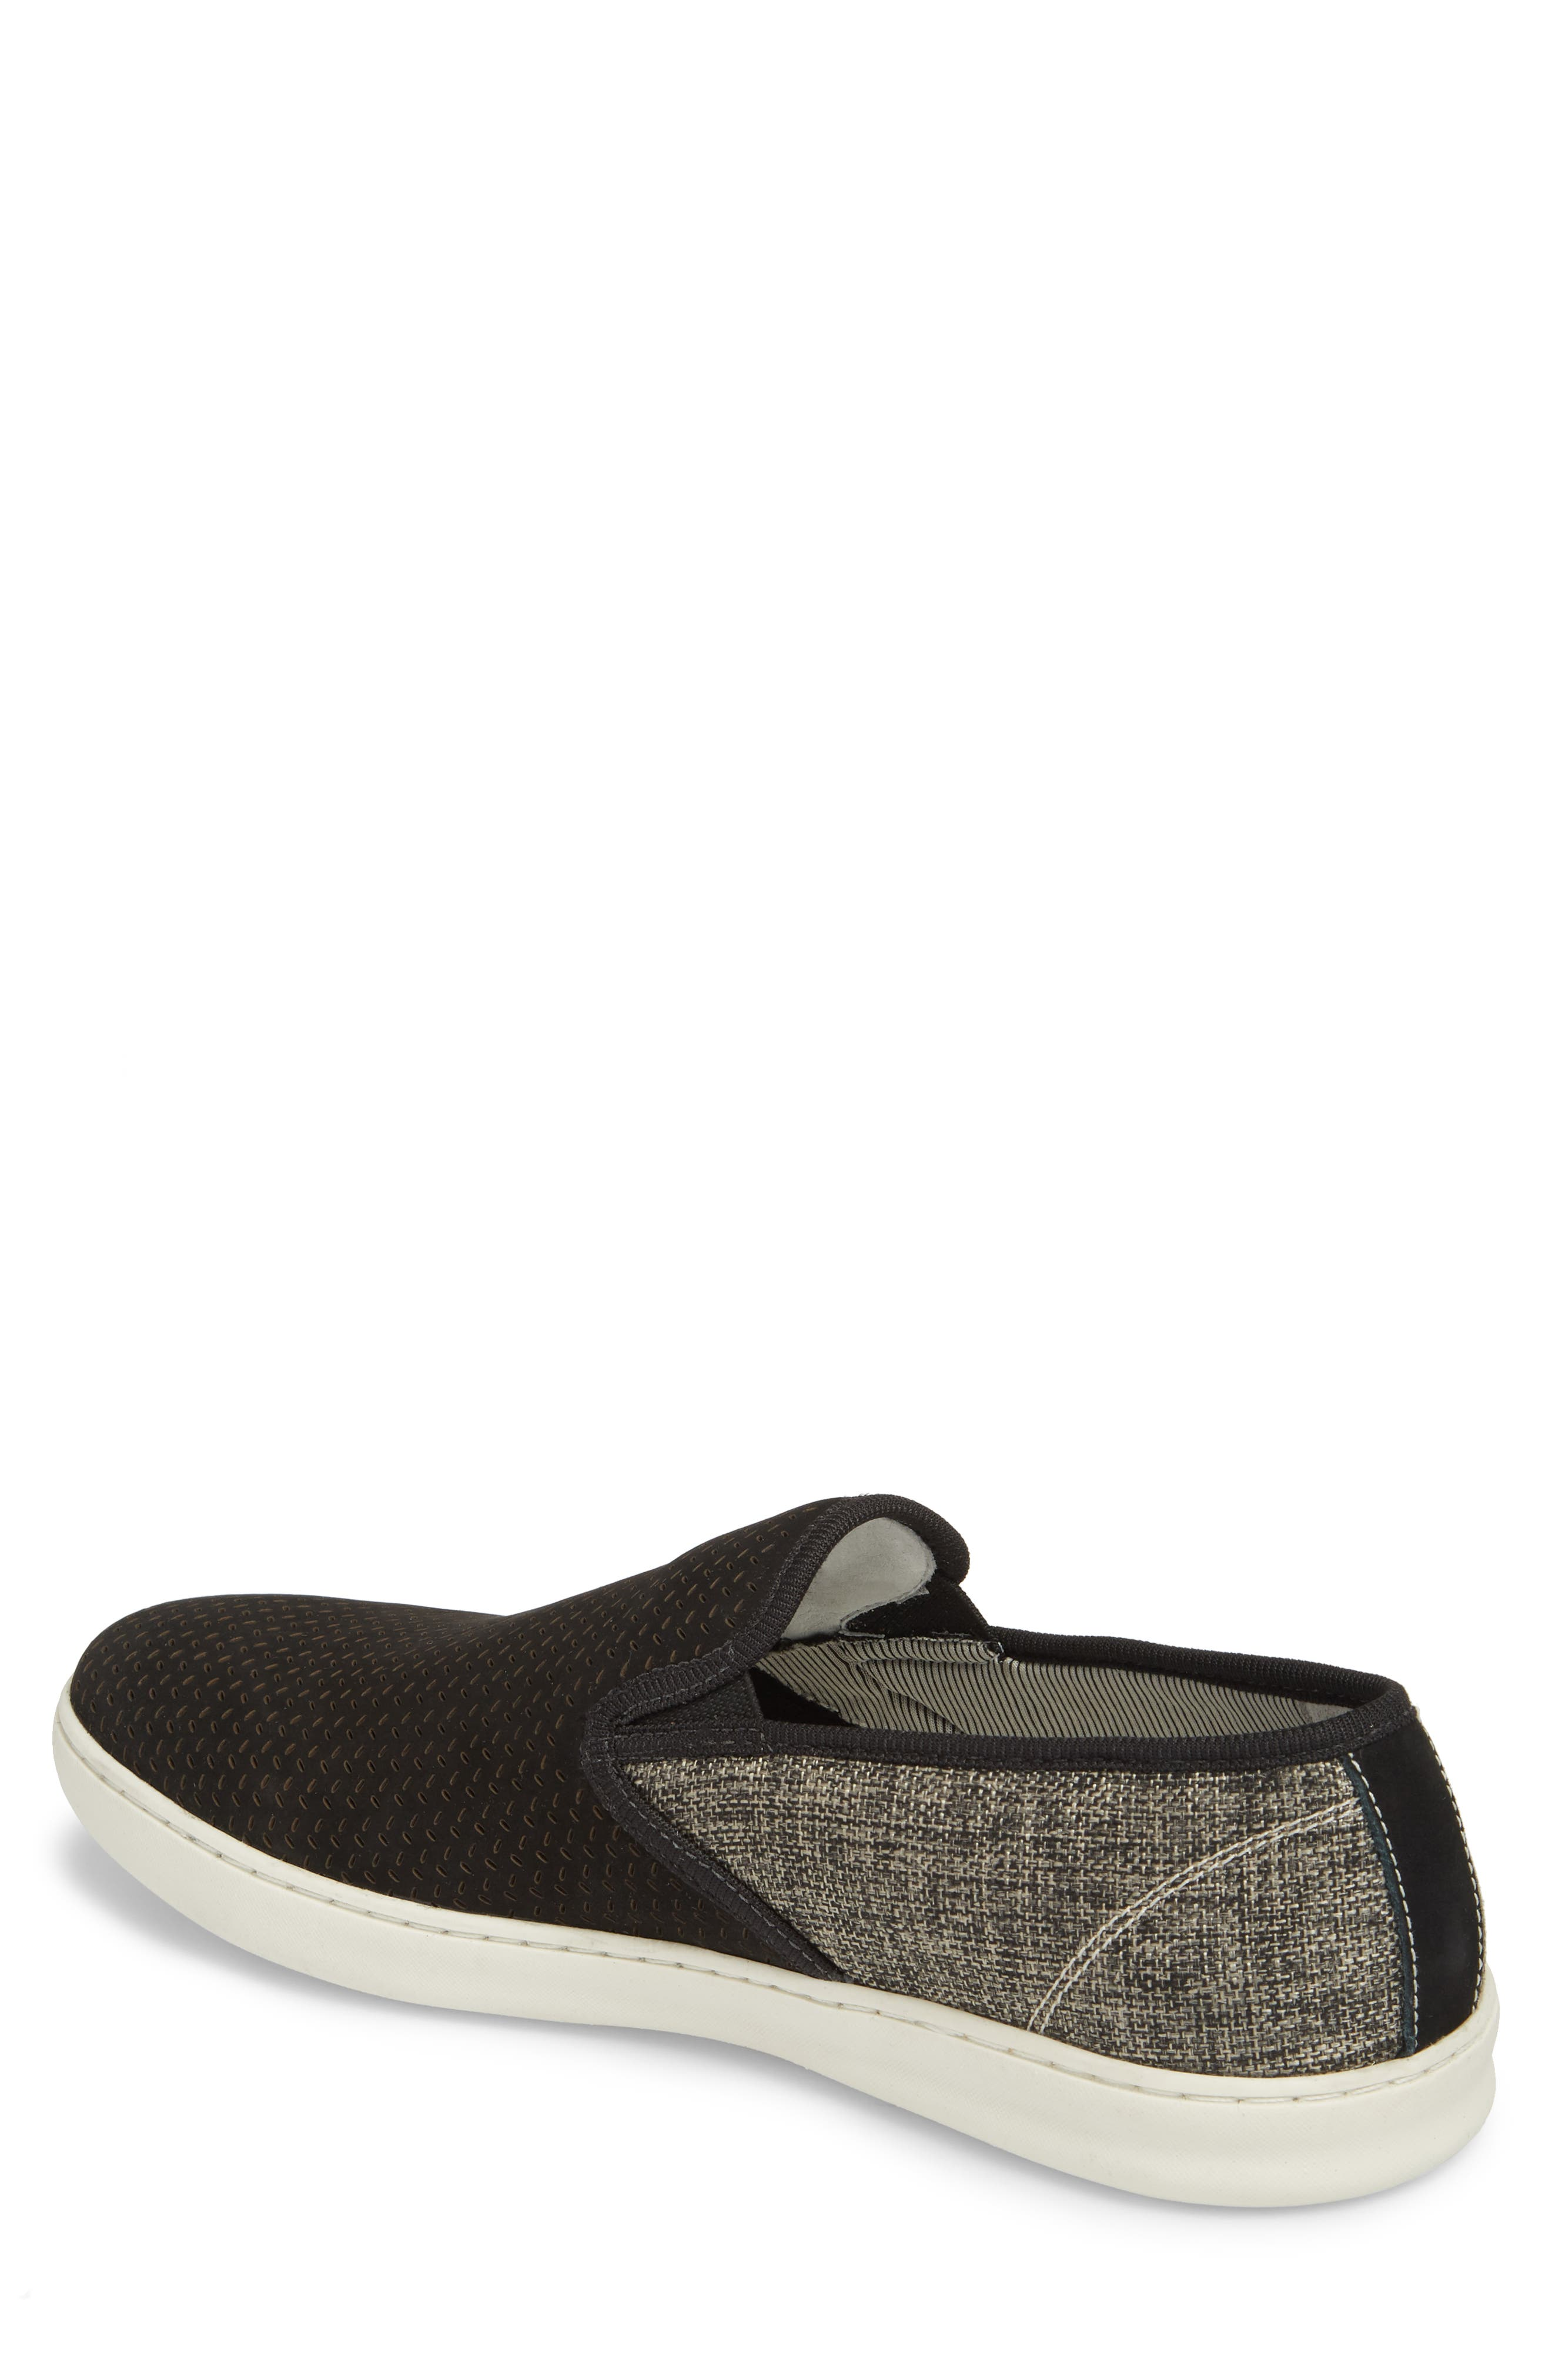 Malibu Perforated Loafer,                             Alternate thumbnail 2, color,                             BLACK LEATHER / GREY CANVAS